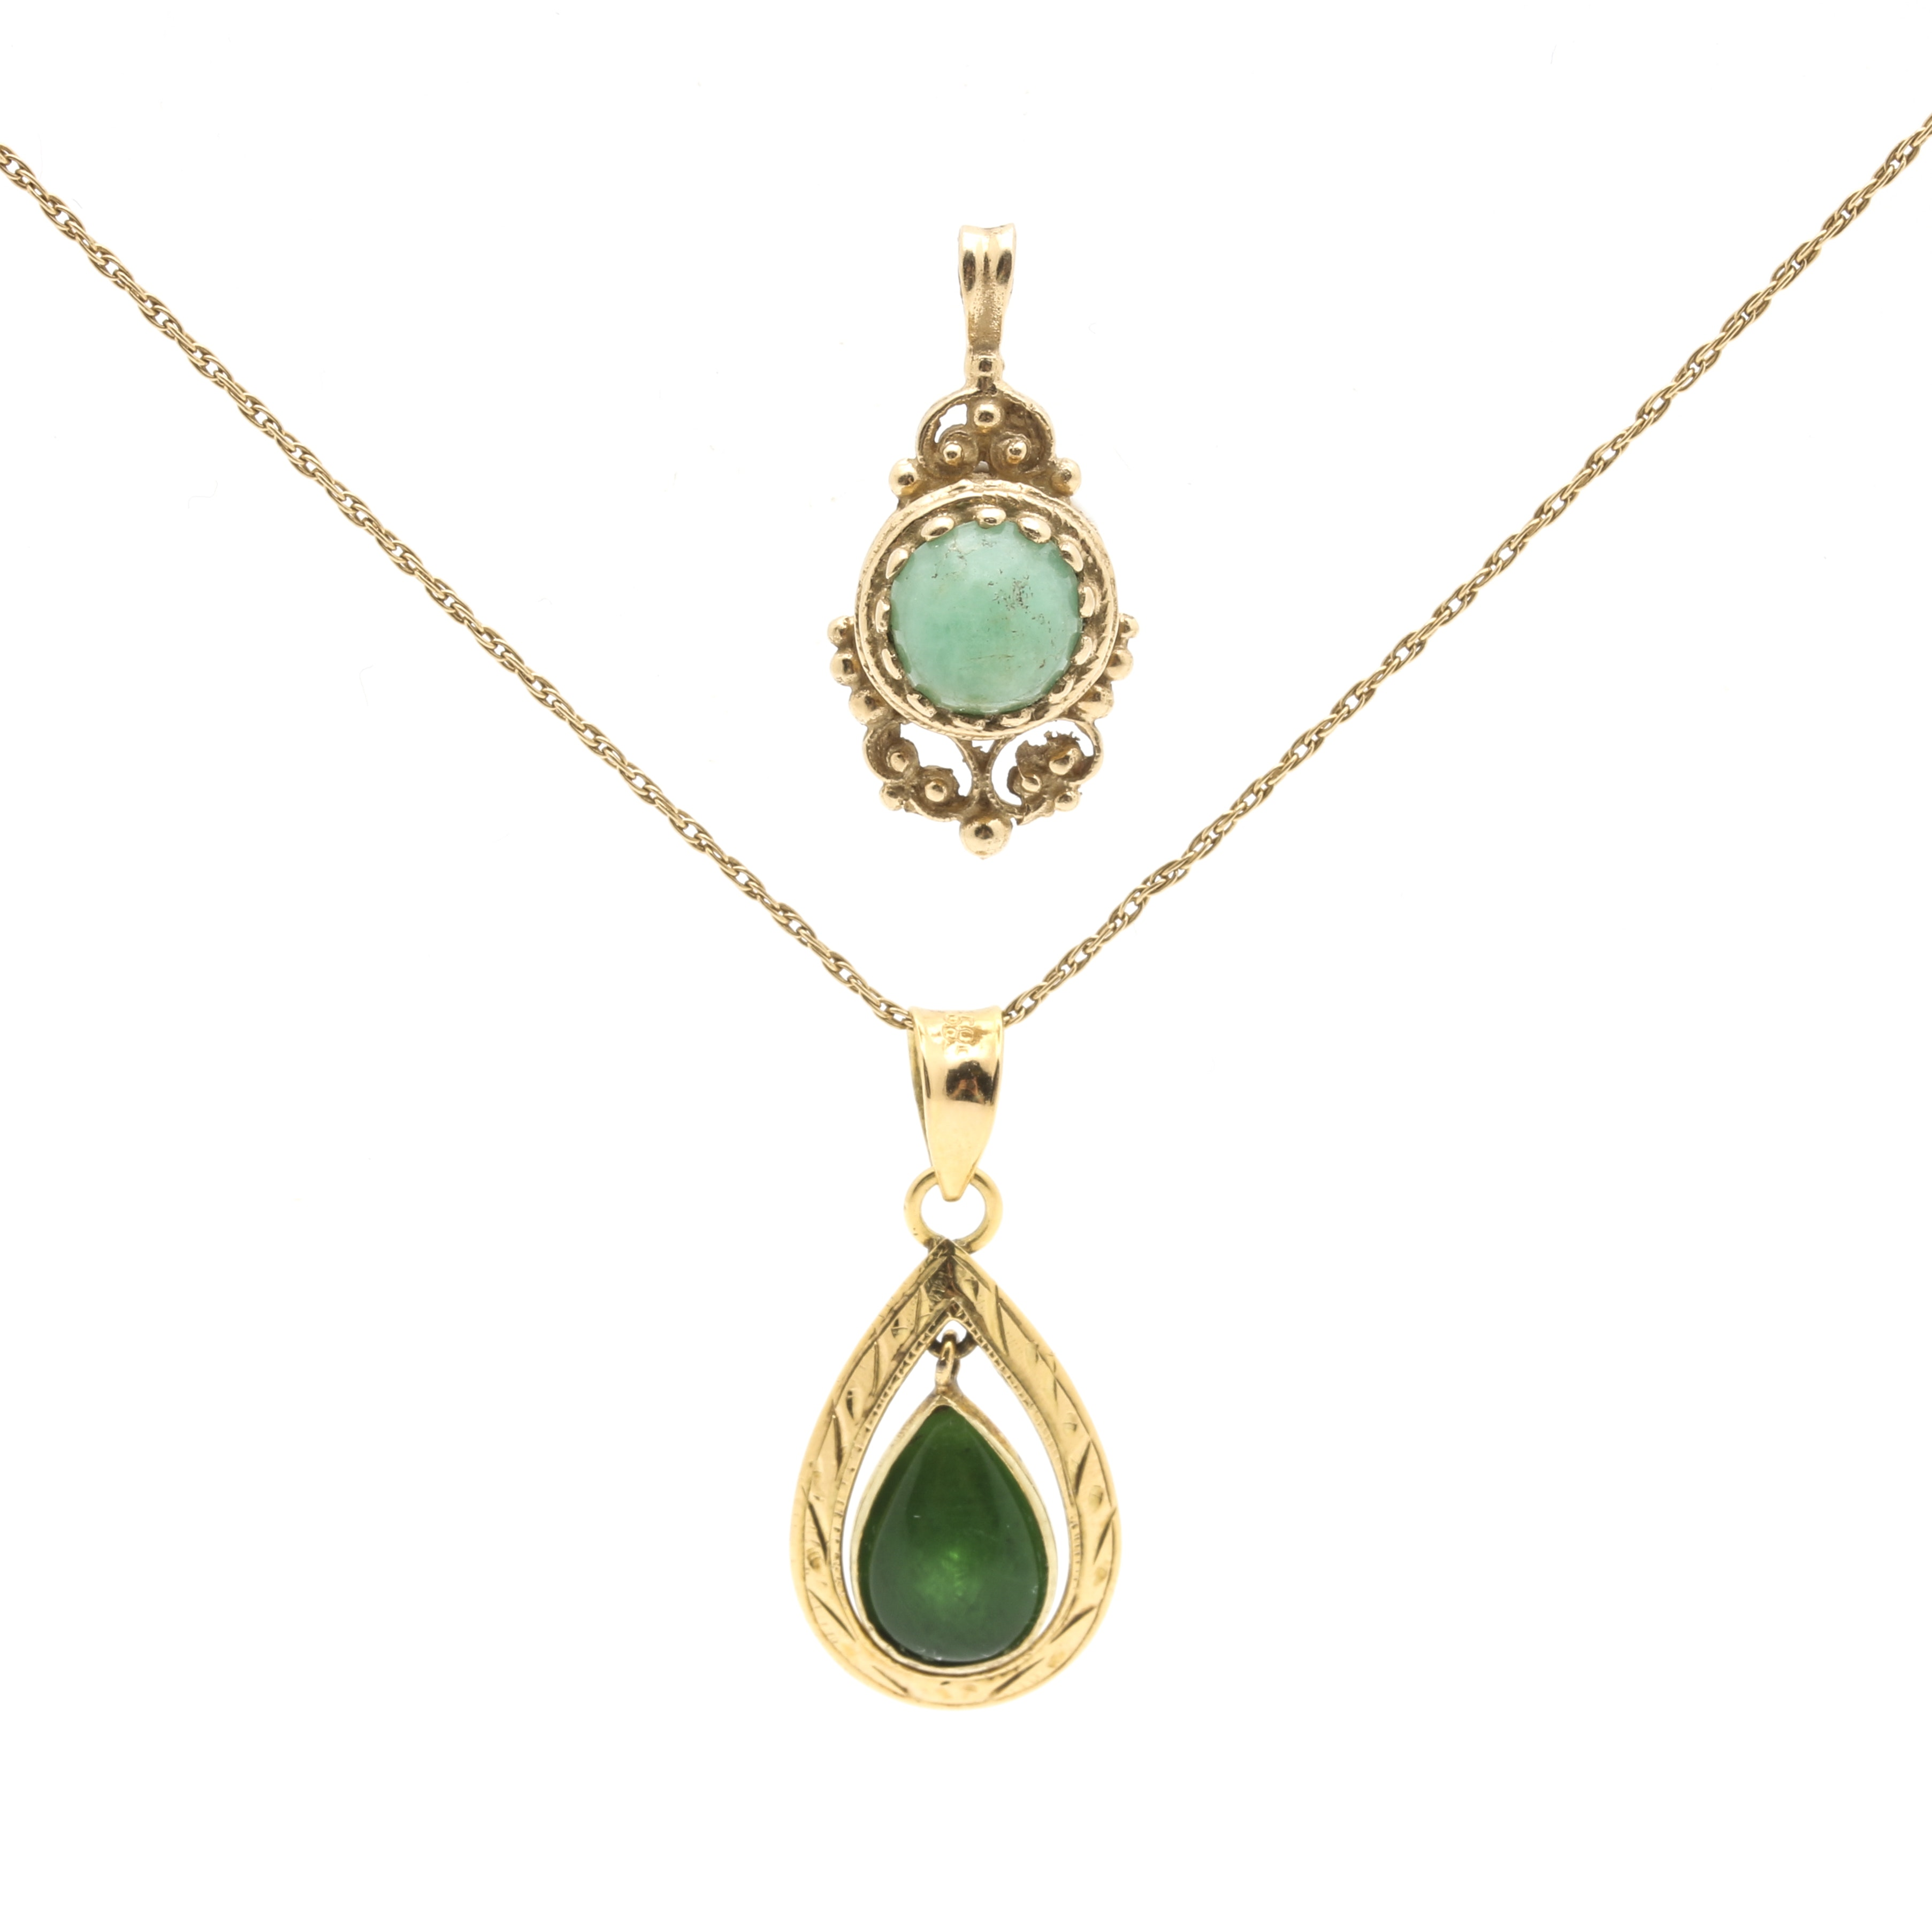 14K Yellow Gold Necklace and Stone Pendants